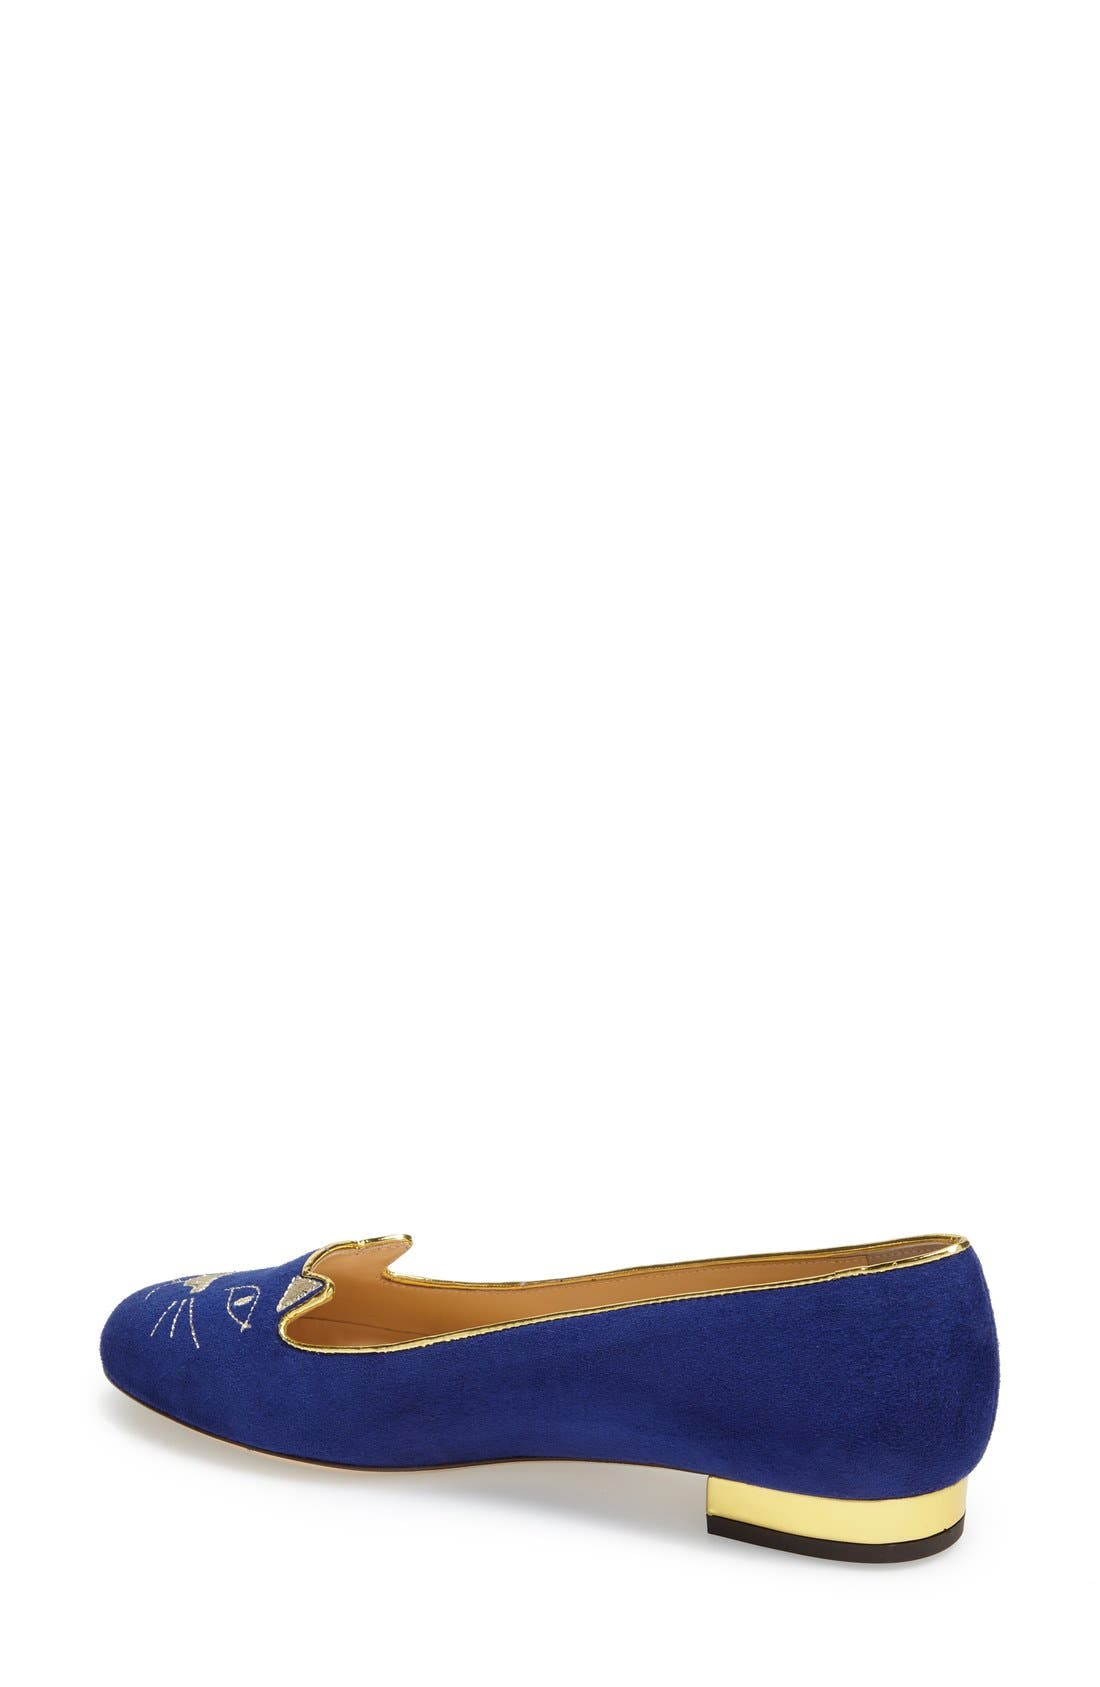 Alternate Image 2  - Charlotte Olympia 'Kitty' Suede Flat (Nordstrom Exclusive)